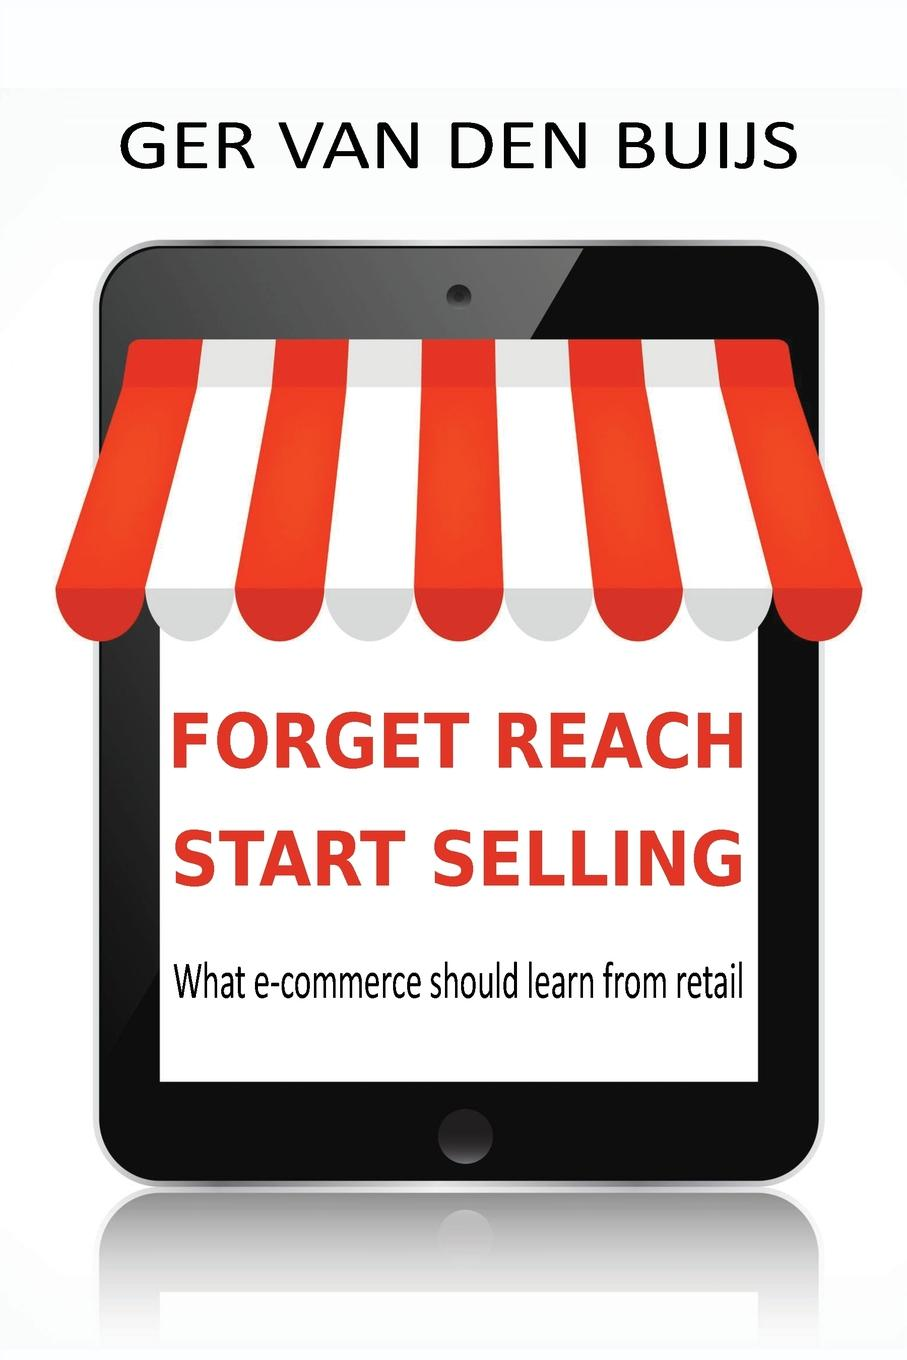 Ger van den Buijs FORGET REACH, START SELLING. What e-commerce should learn from retail